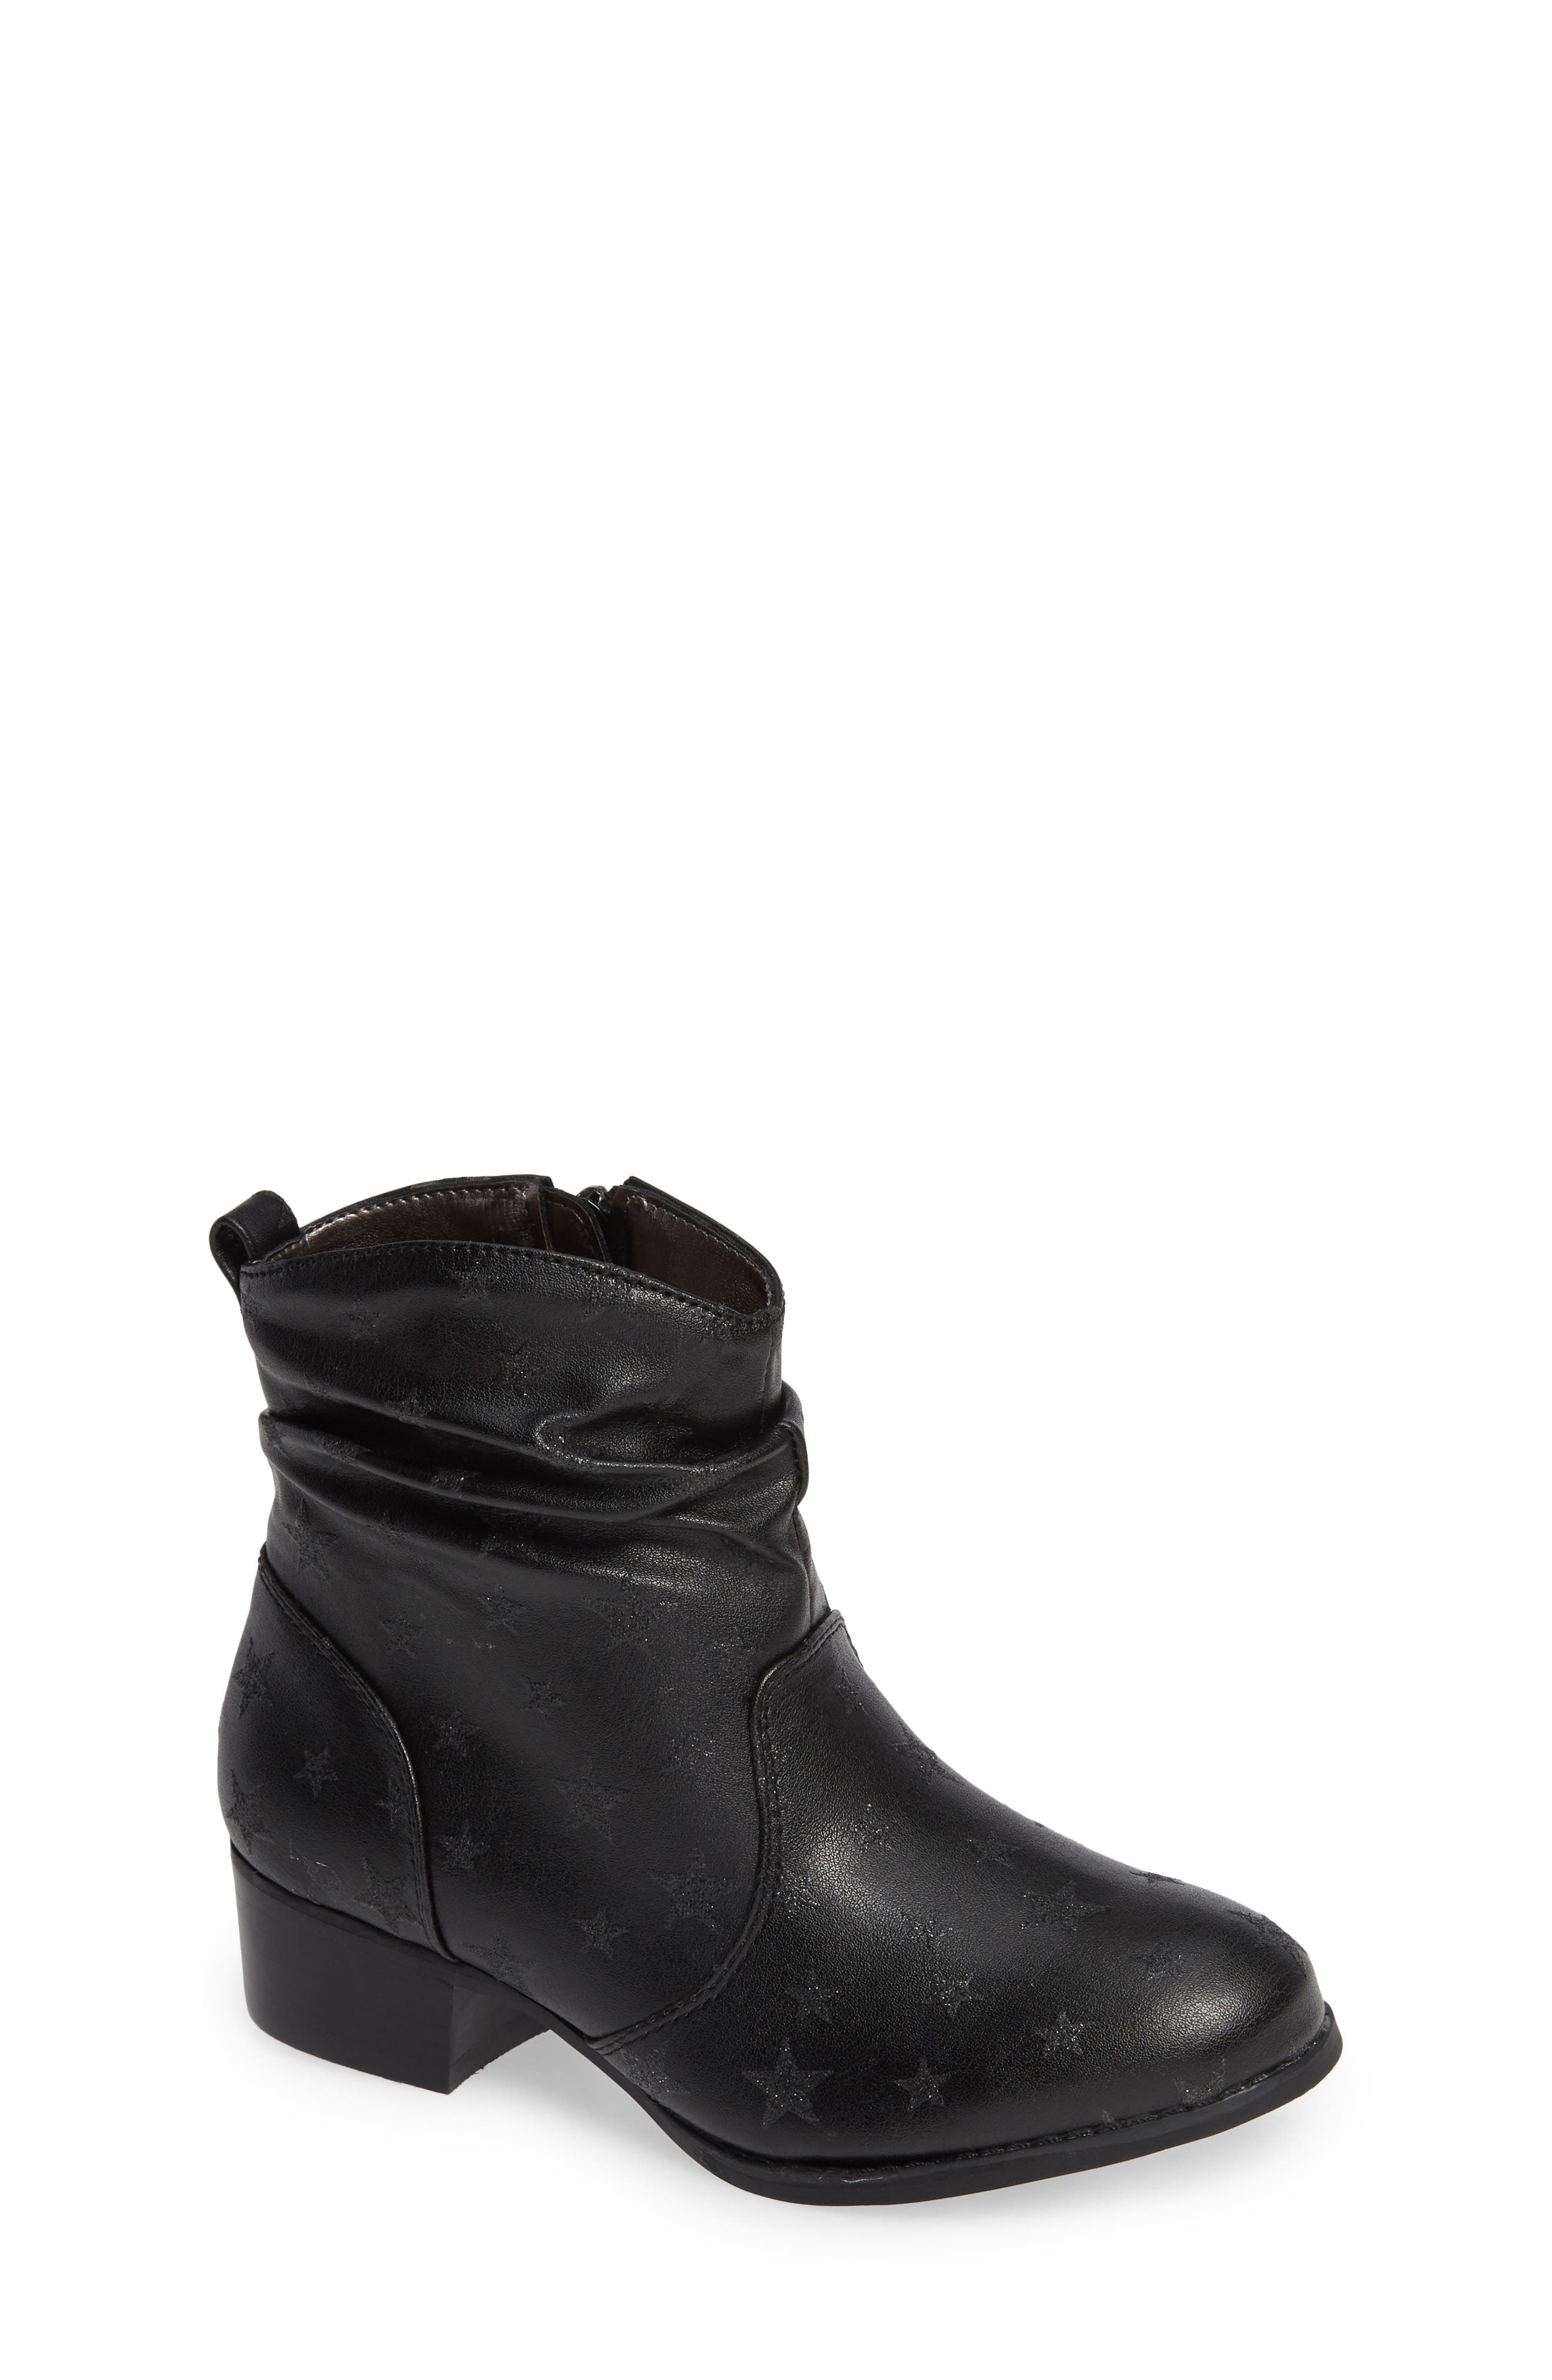 JCountry Slouch Bootie,                             Main thumbnail 1, color,                             BLACK